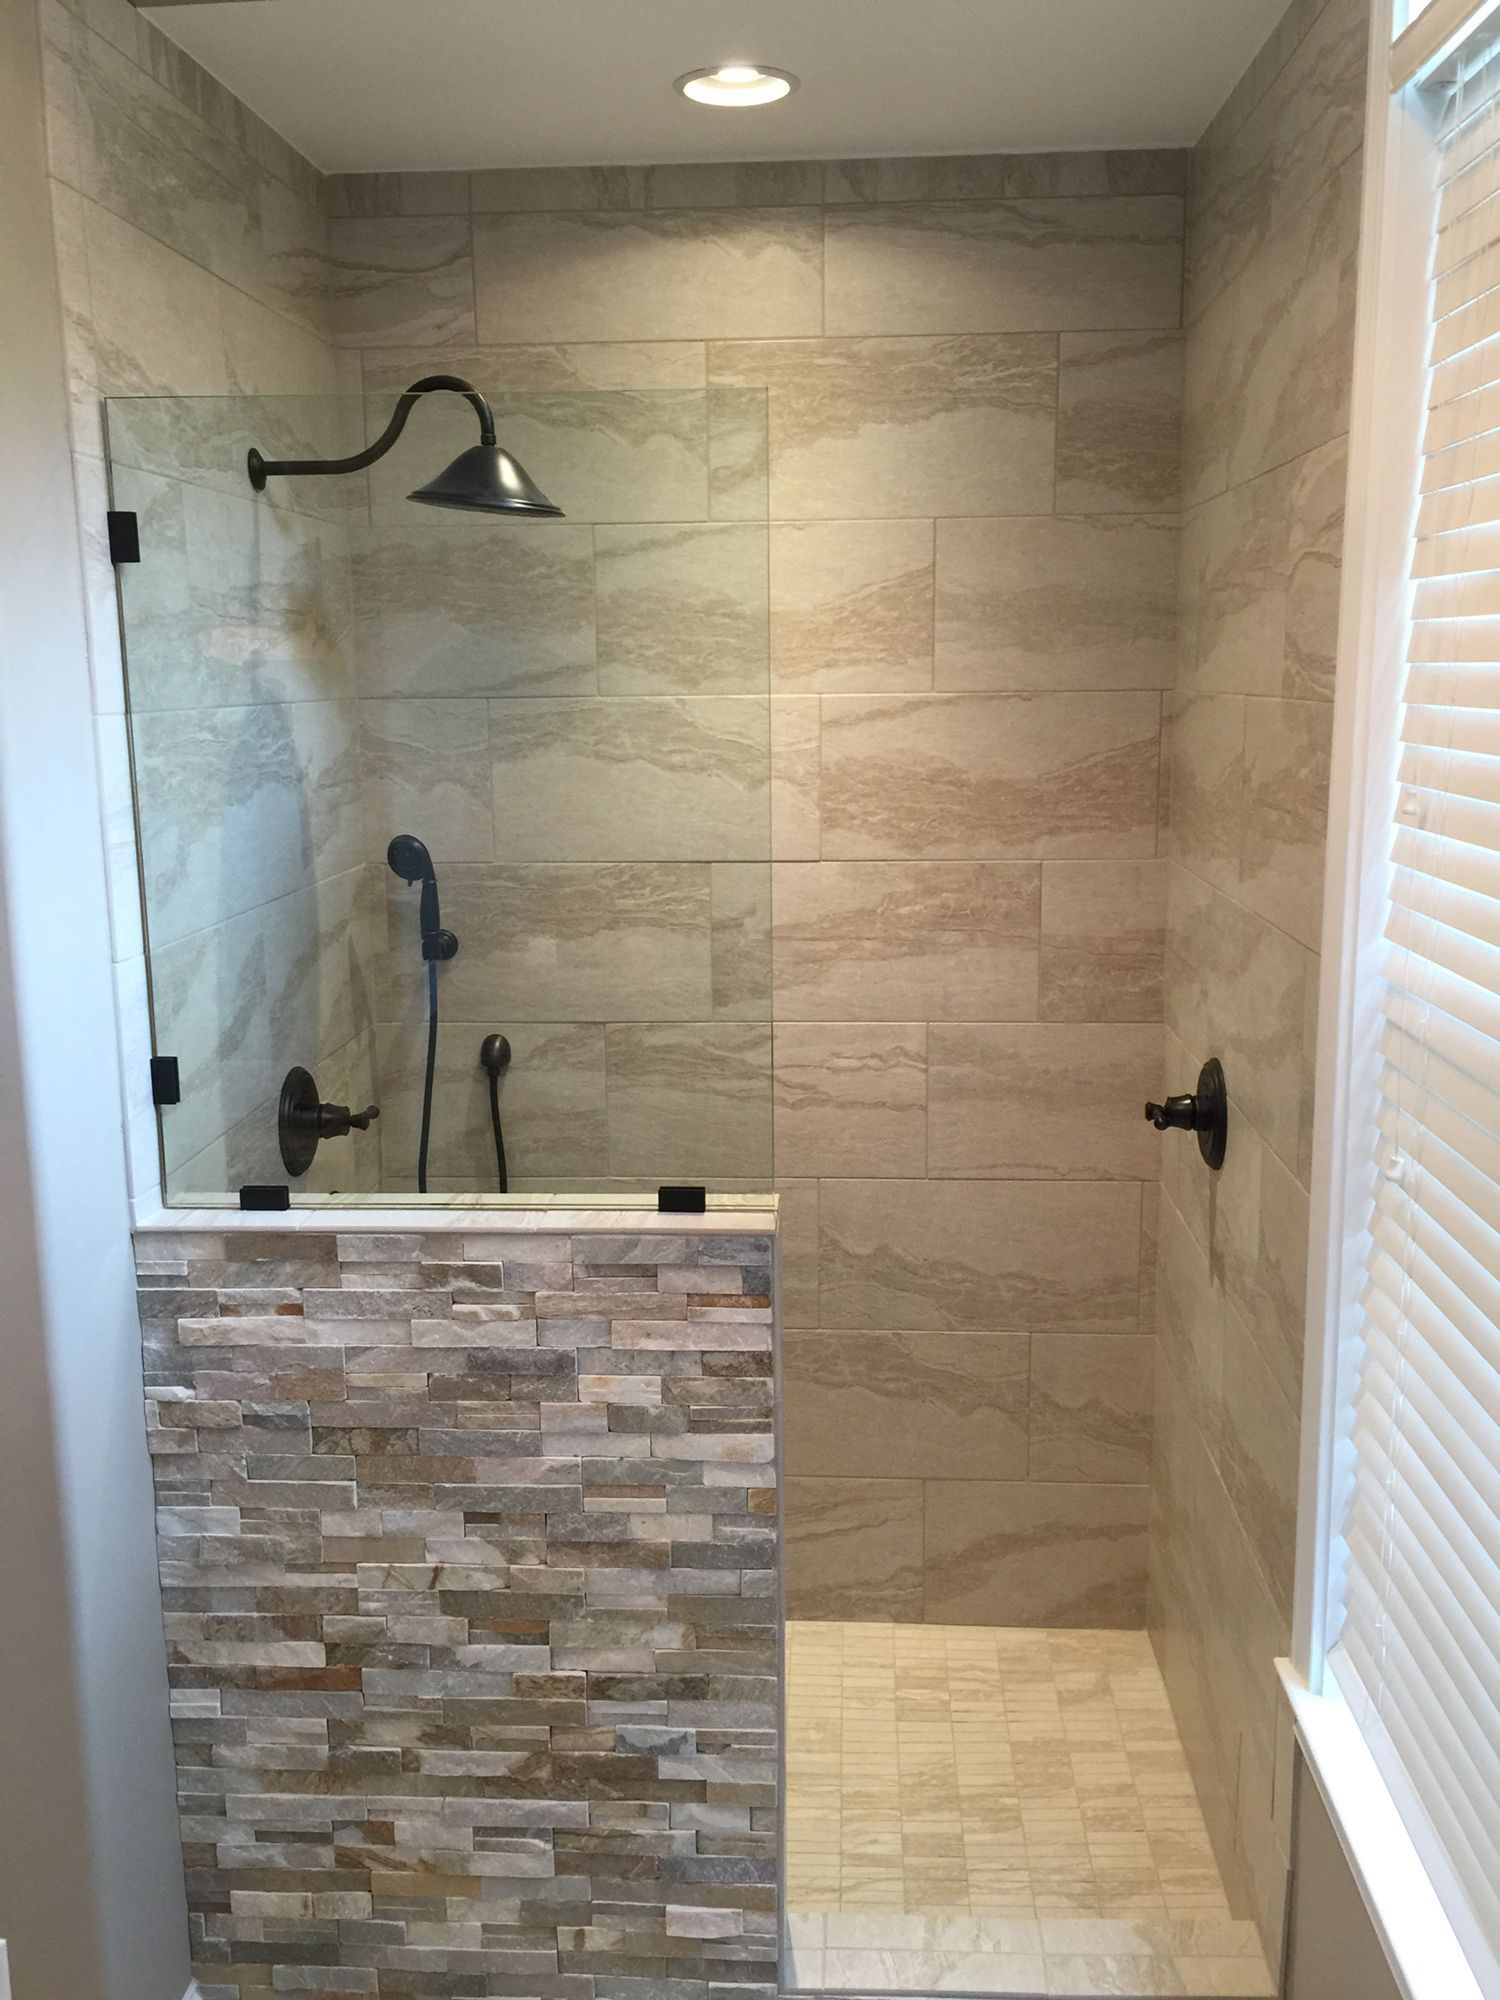 New shower replaced the old jacuzzi tub | Bathroom shower ...